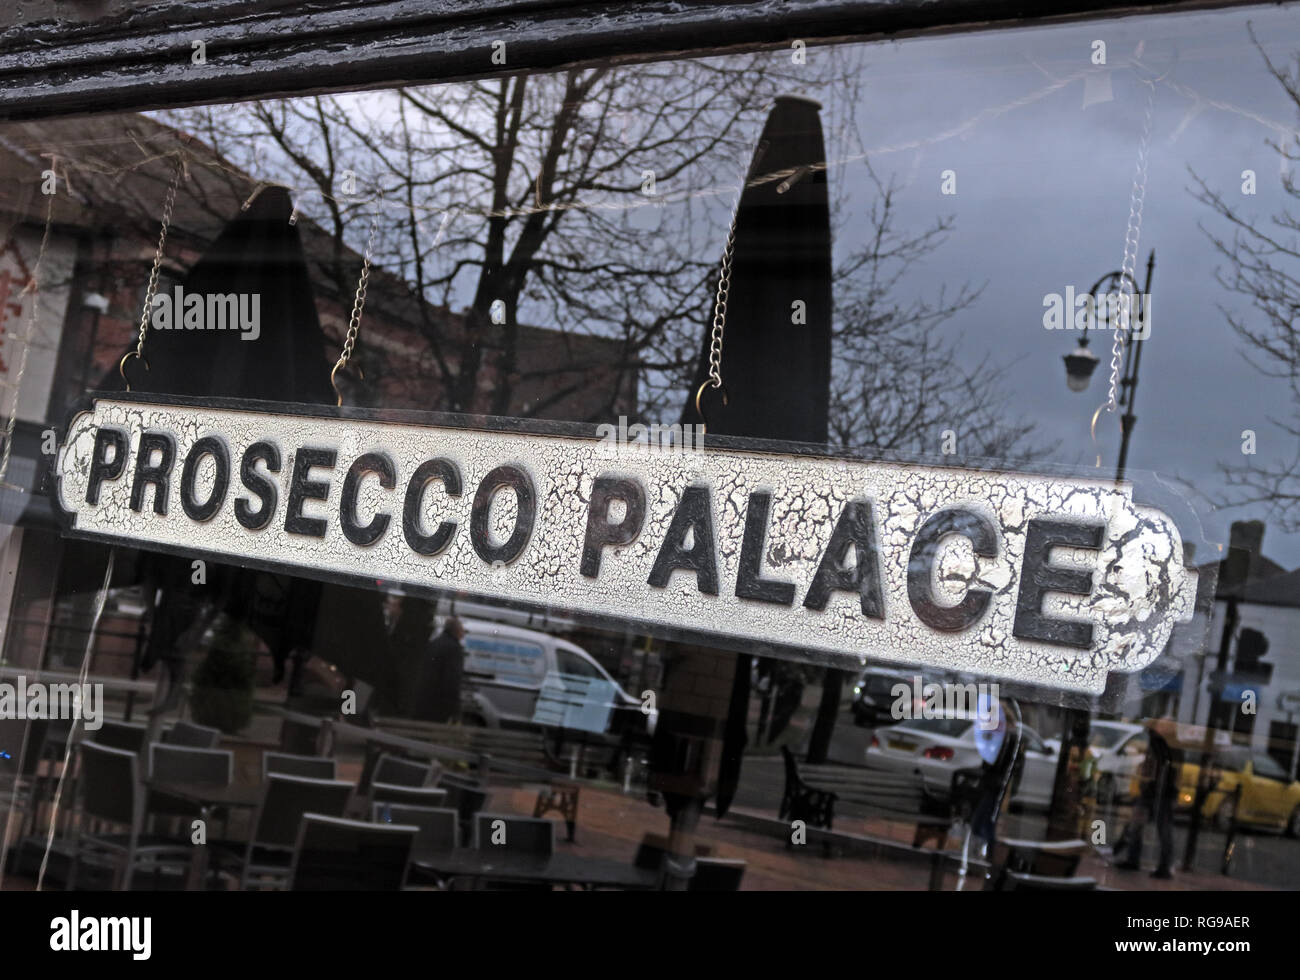 Prosecco Palace Sign in a bar window, Mulberry Tree, Stockton Heath, Warrington, Cheshire, North West England, UK, WA4 2AF - Stock Image